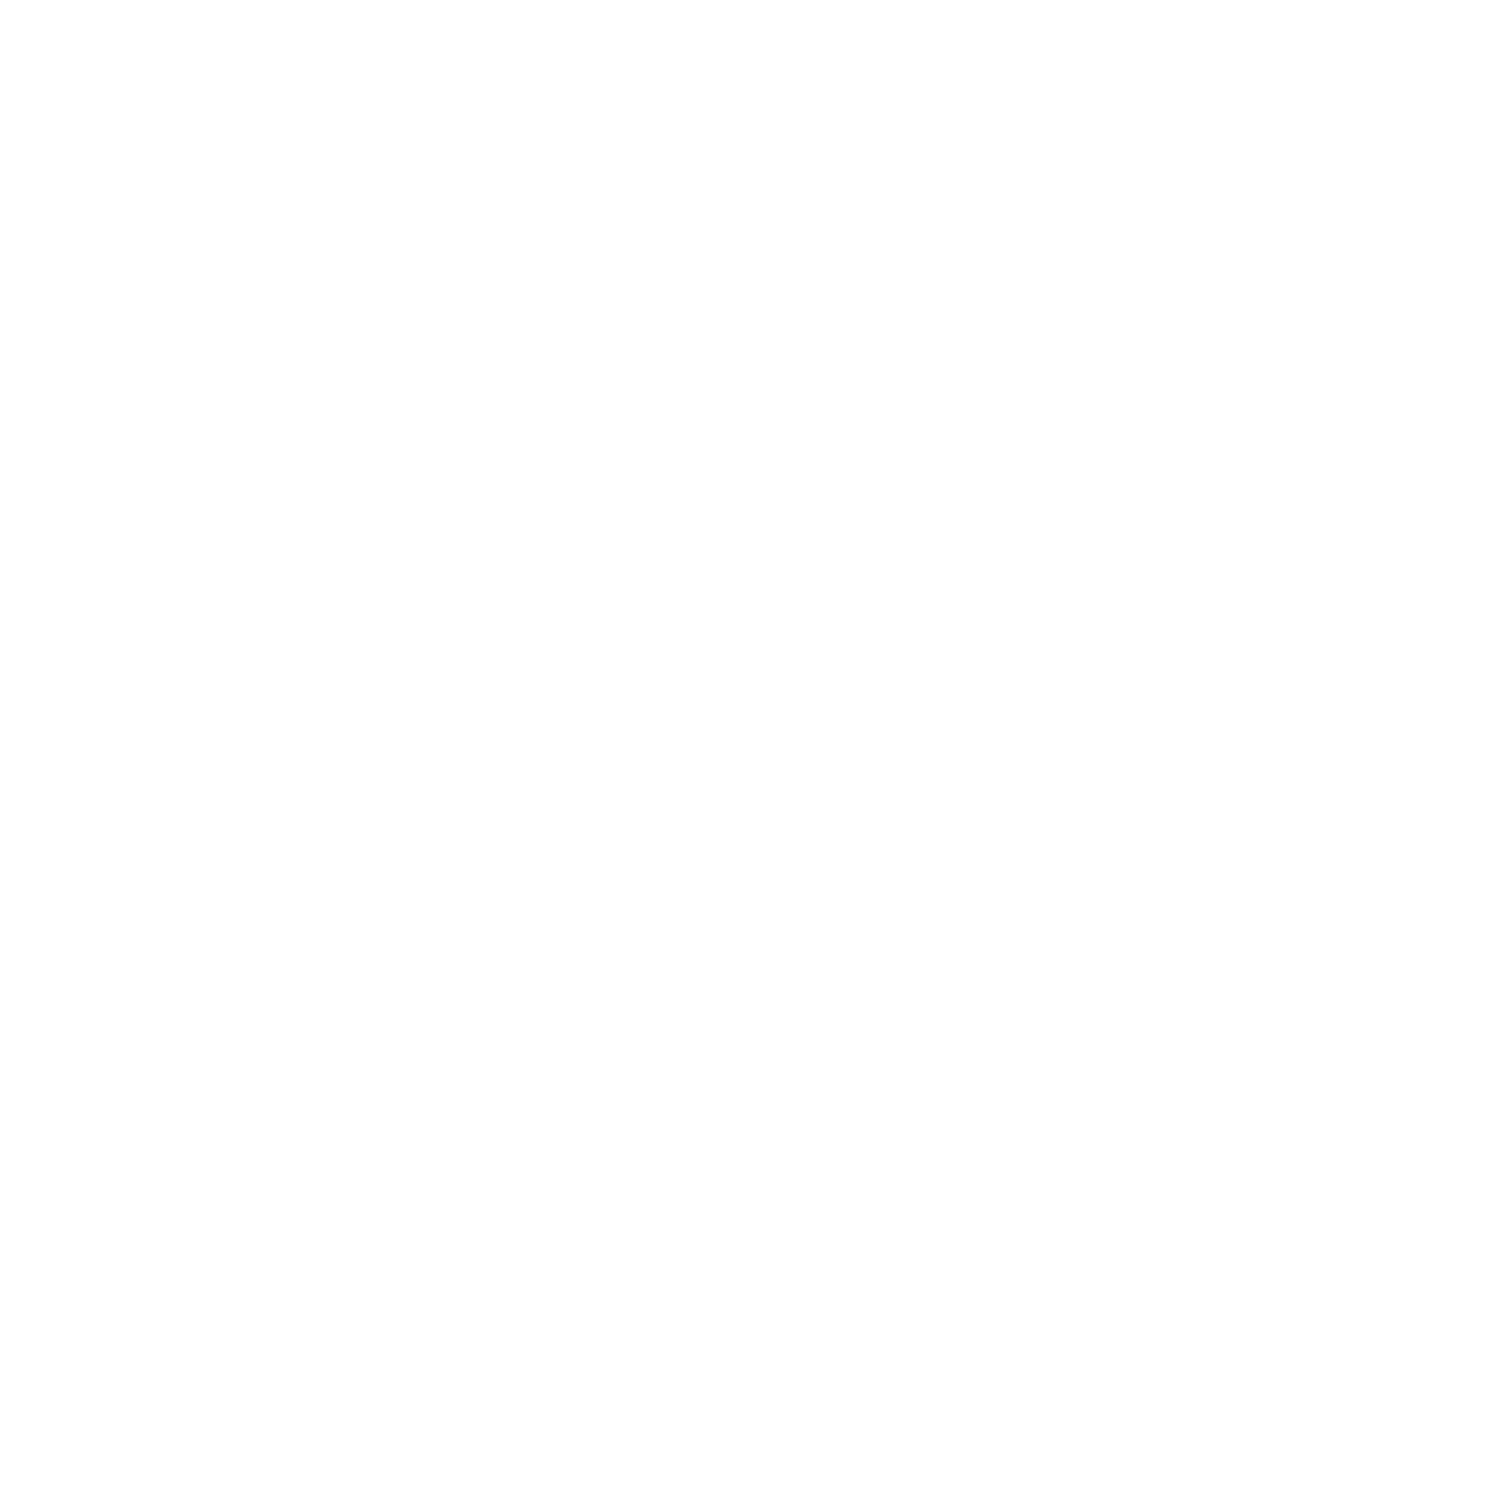 Deana Ashby Bathrooms & Interiors